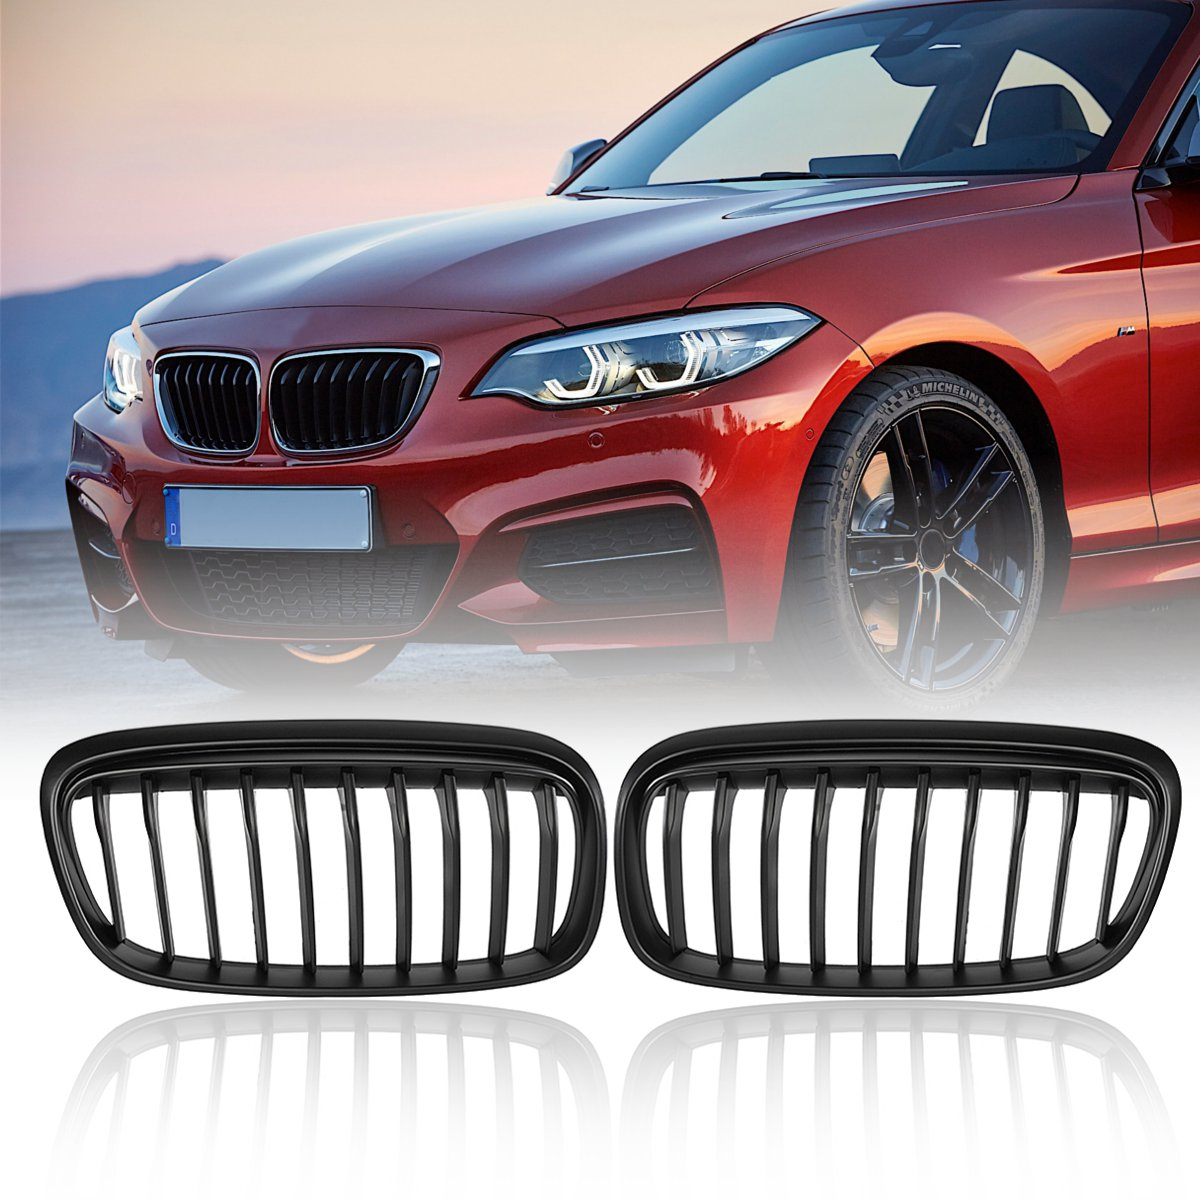 Racing Grills Pair Matte Black Front Grill Grille For BMW 2 Series Variant F45 2014 2015 2016 2017 2018 Car stylingRacing Grills Pair Matte Black Front Grill Grille For BMW 2 Series Variant F45 2014 2015 2016 2017 2018 Car styling